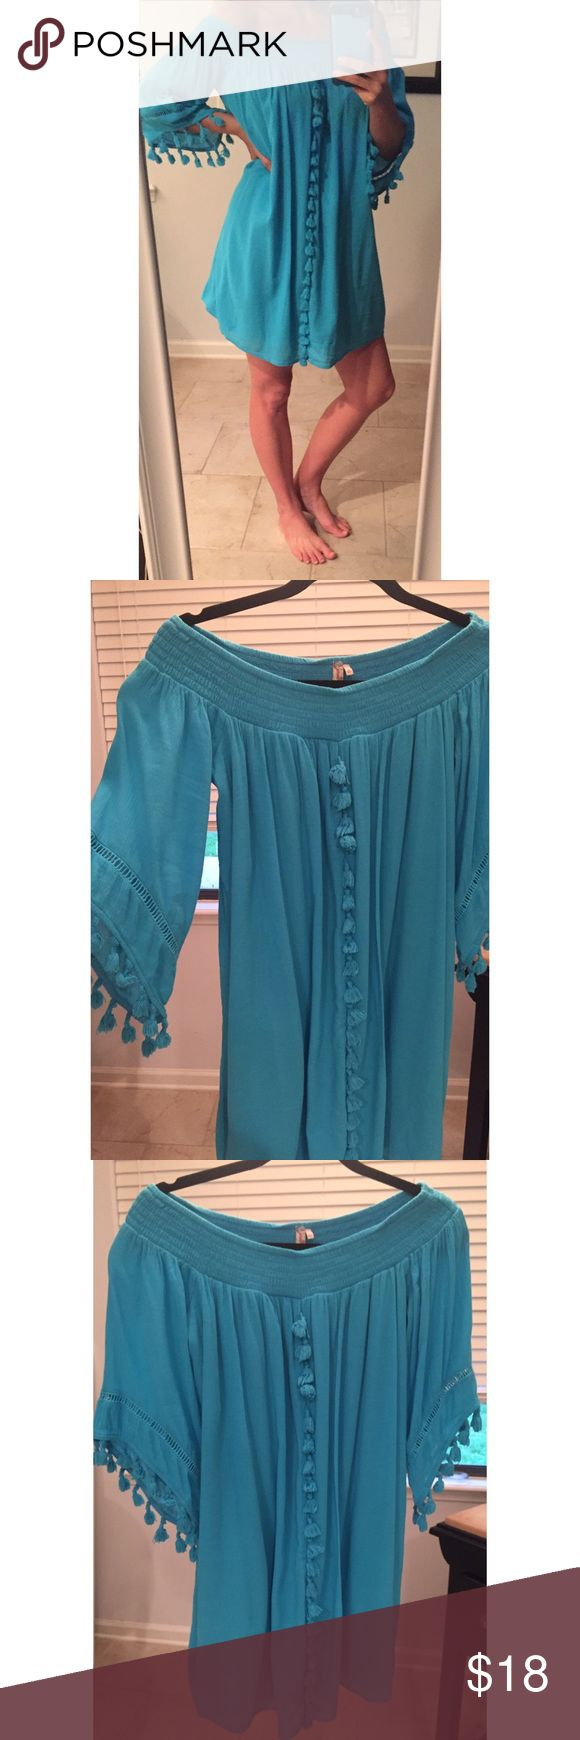 "Off shoulders gauze boho beach dress small S Lightweight and fully lined. The smocked neckline stretches so you can wear completely off shoulders! I took tags off but never wore out. Aqua teal color. Says size small but I am a 4-6 and it has room. Underarm to bottom 23"". Reasonable offers welcome! Red Camel Dresses Mini"